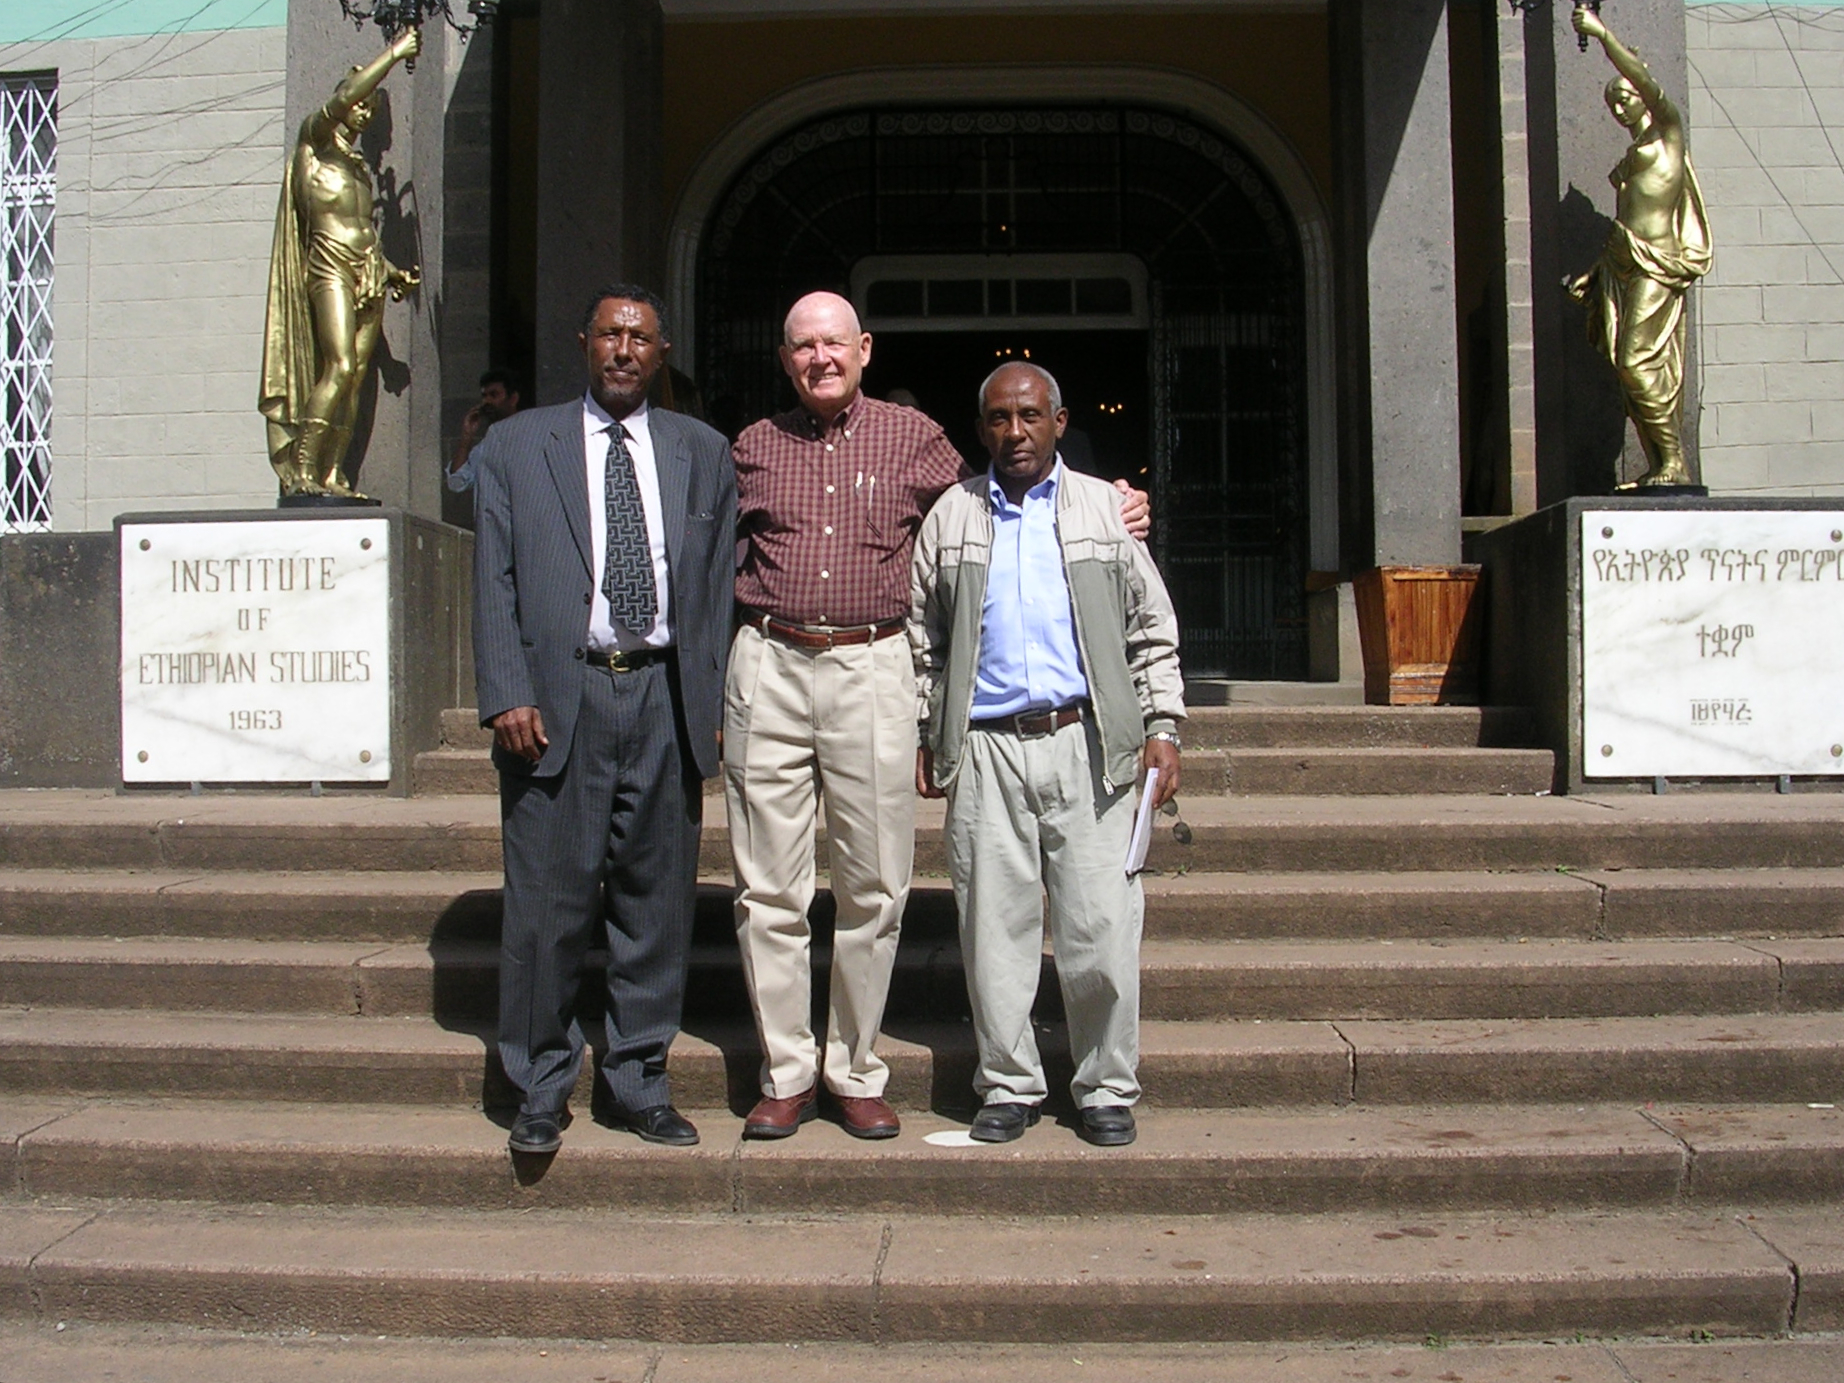 Institute of Ethiopian Studies Addis Ababa, Addis Ababa Homecoming – Entwined Lives: Reflections of a Returned ...